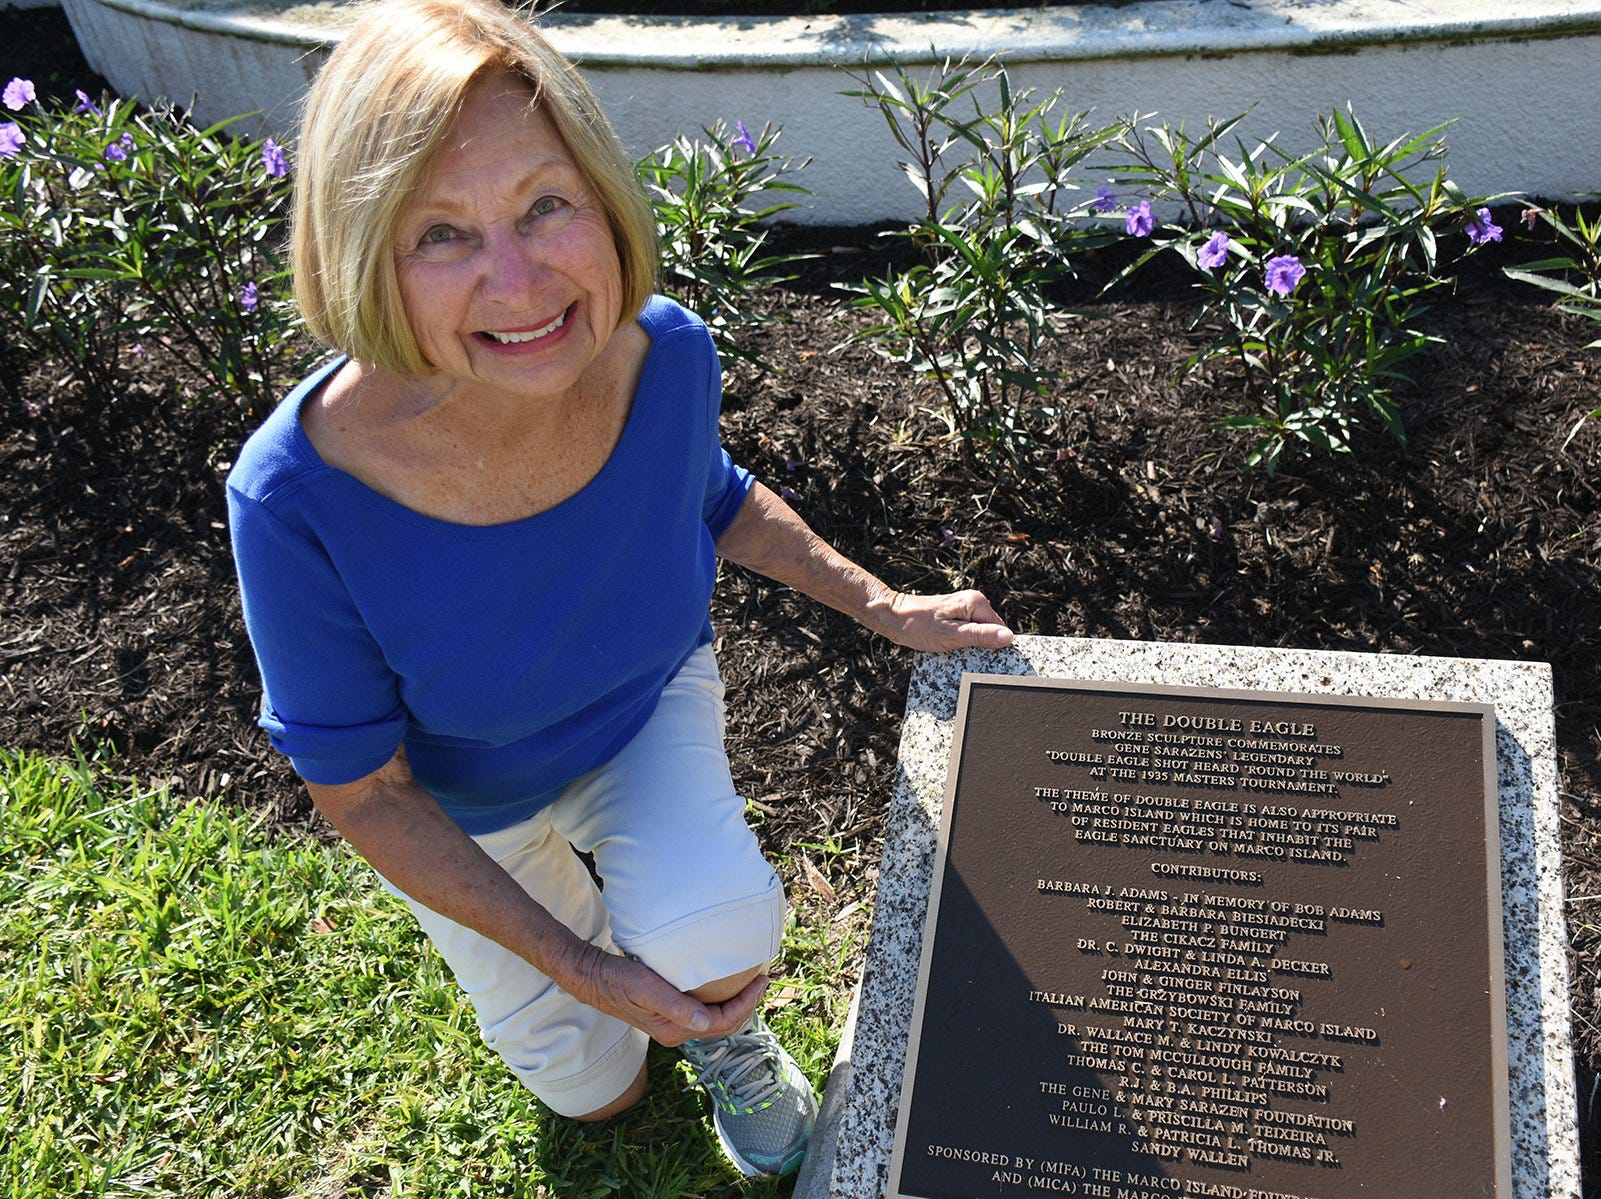 Barbara Adams is listed first on the plaque. Friday morning, the Marco Island Foundation for the Arts unveiled a plaque with the names of donors who have contributed to the purchase of the Double Eagle sculpture at Sarazen Park on Marco.